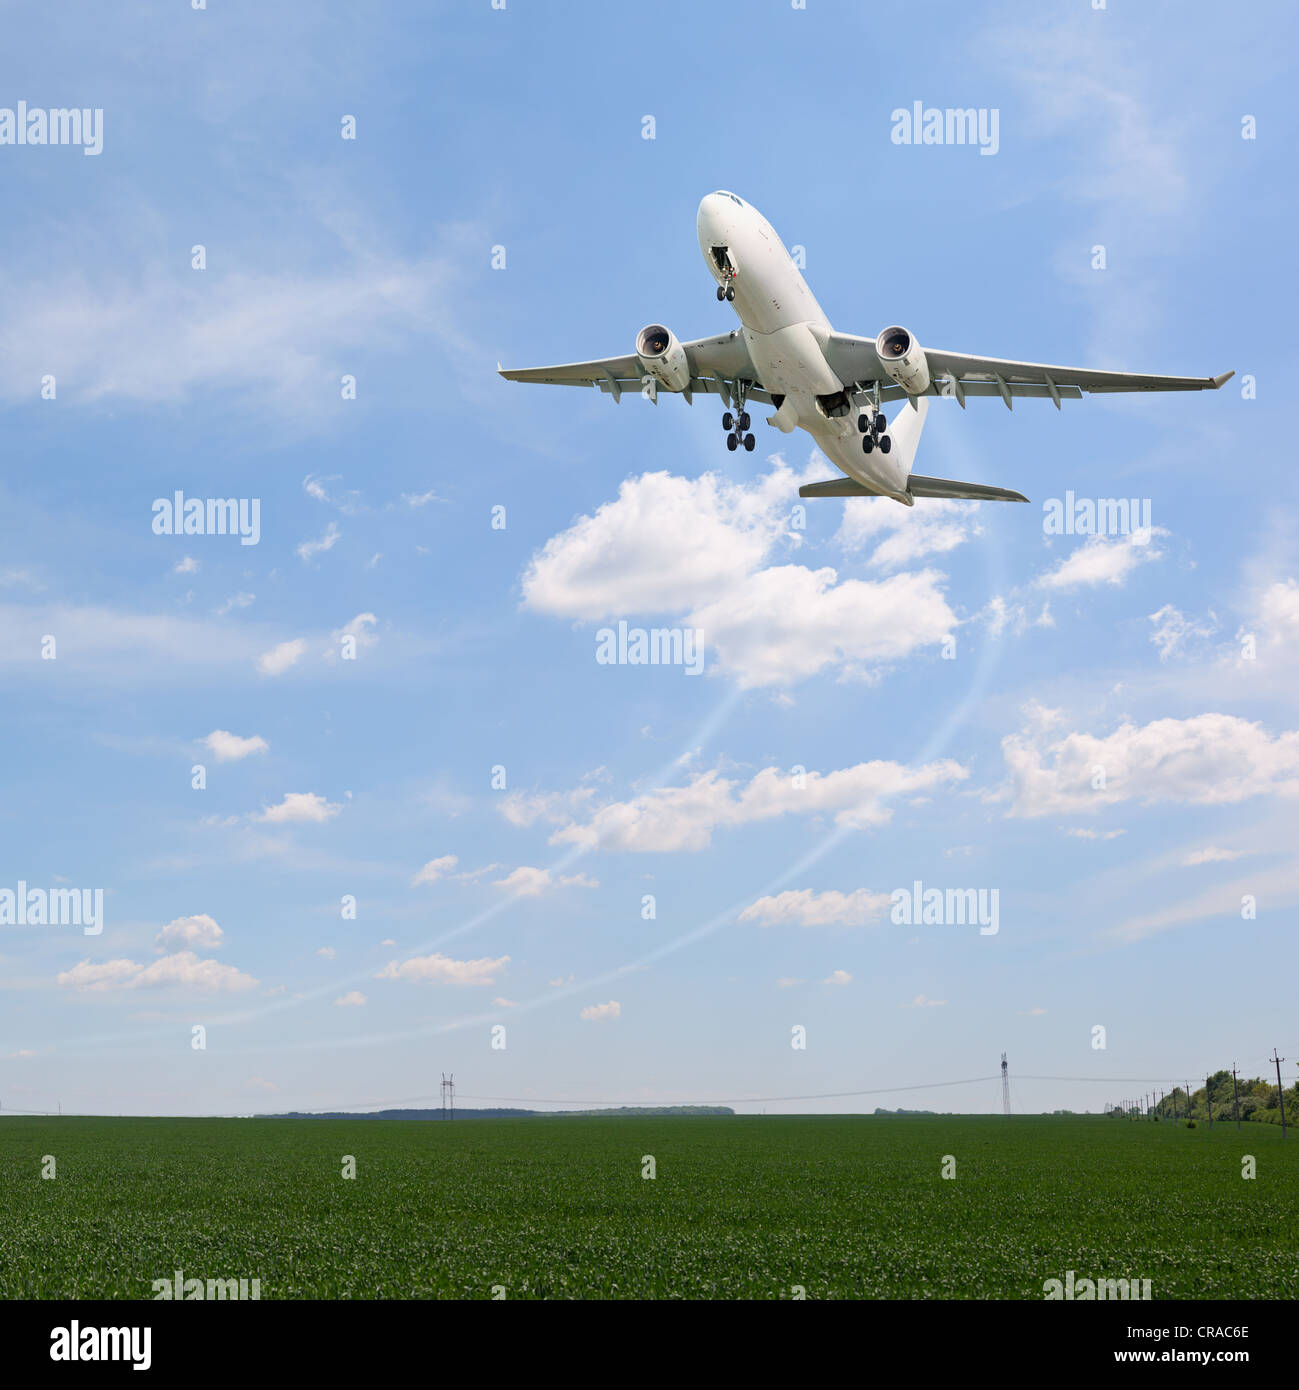 Passenger aircraft taking off over the fields - Stock Image